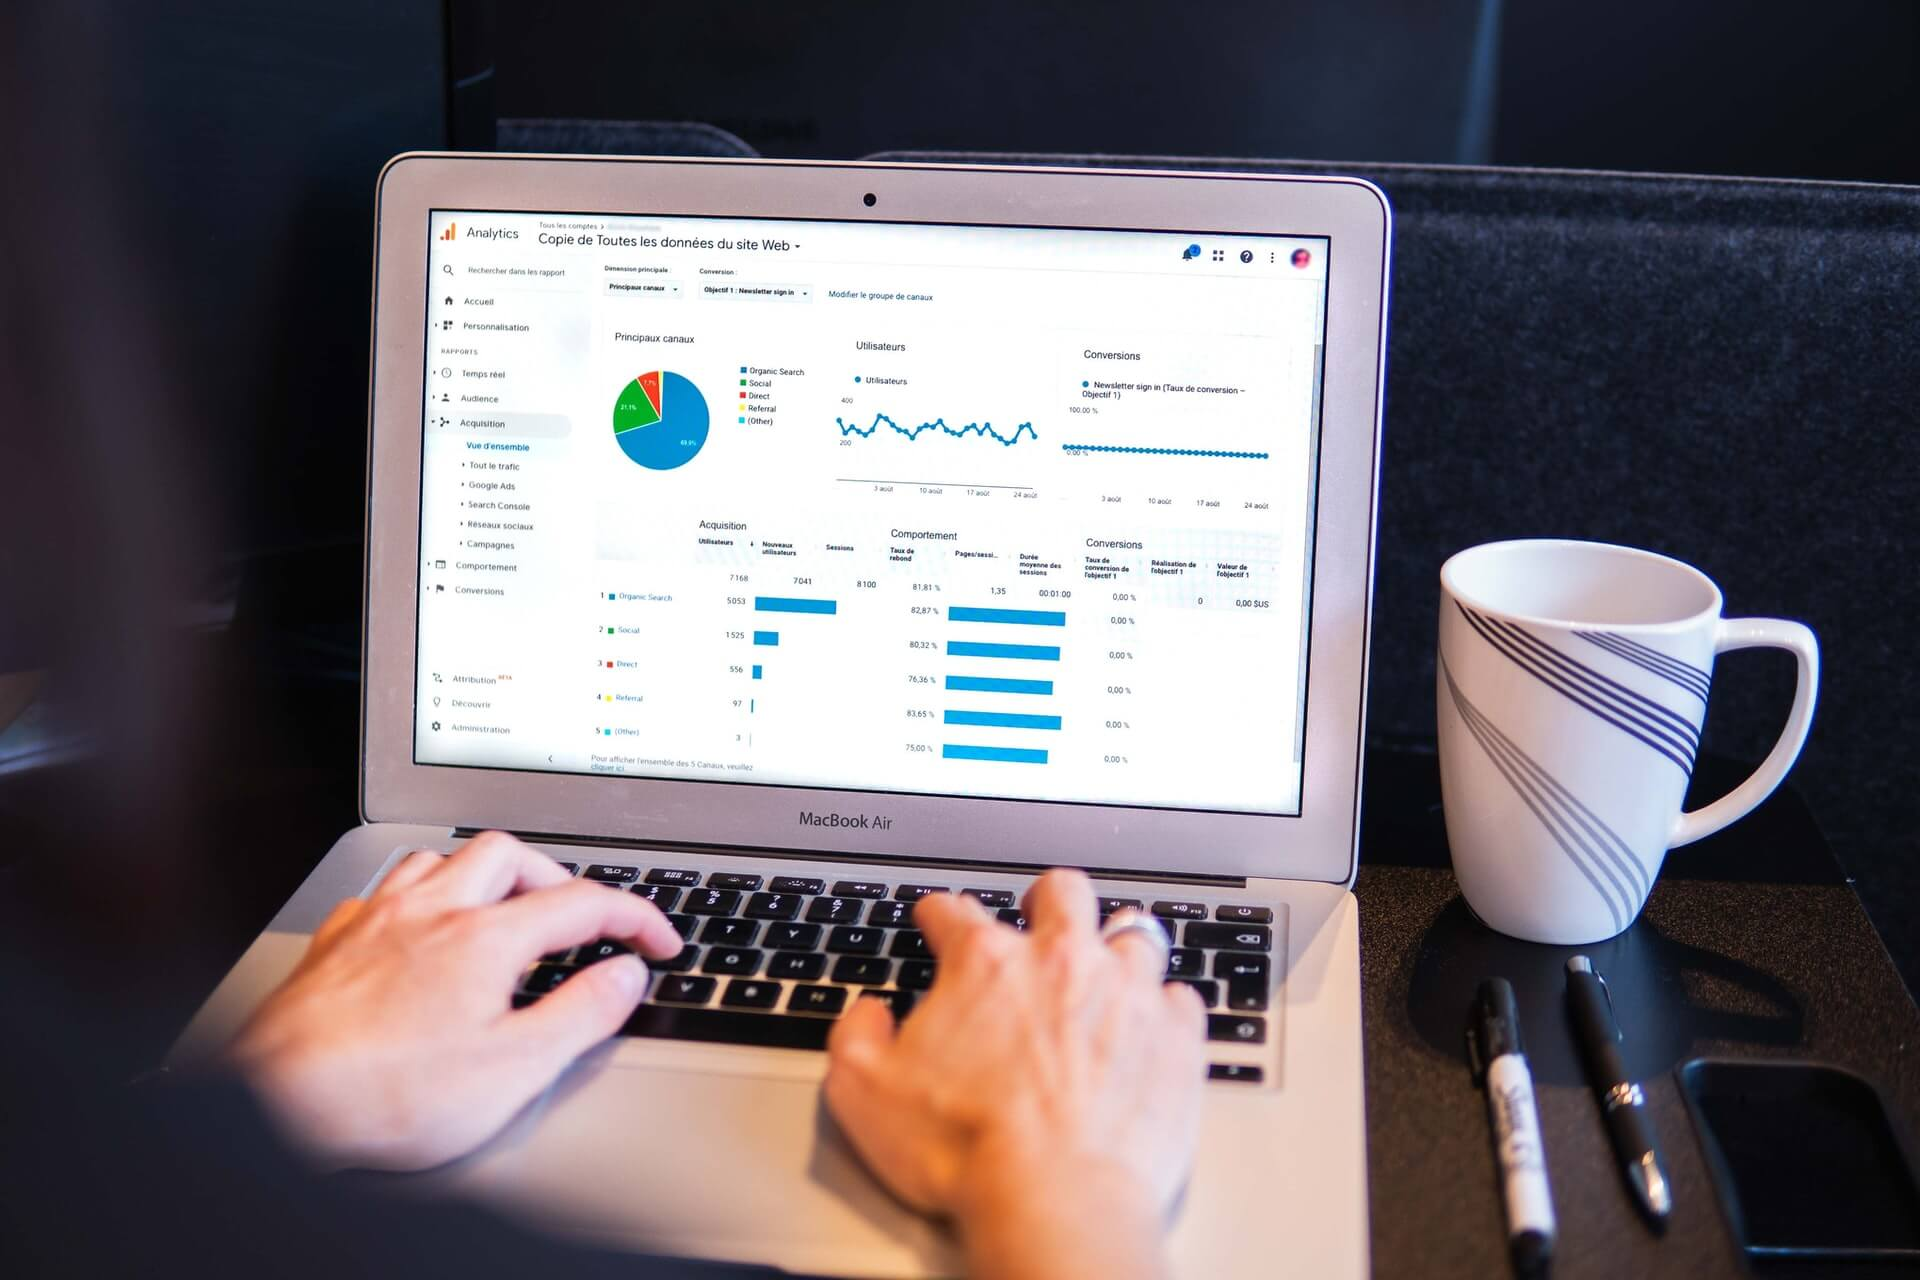 Do You Need Marketing Analytics? How Can You Make the Most of It?